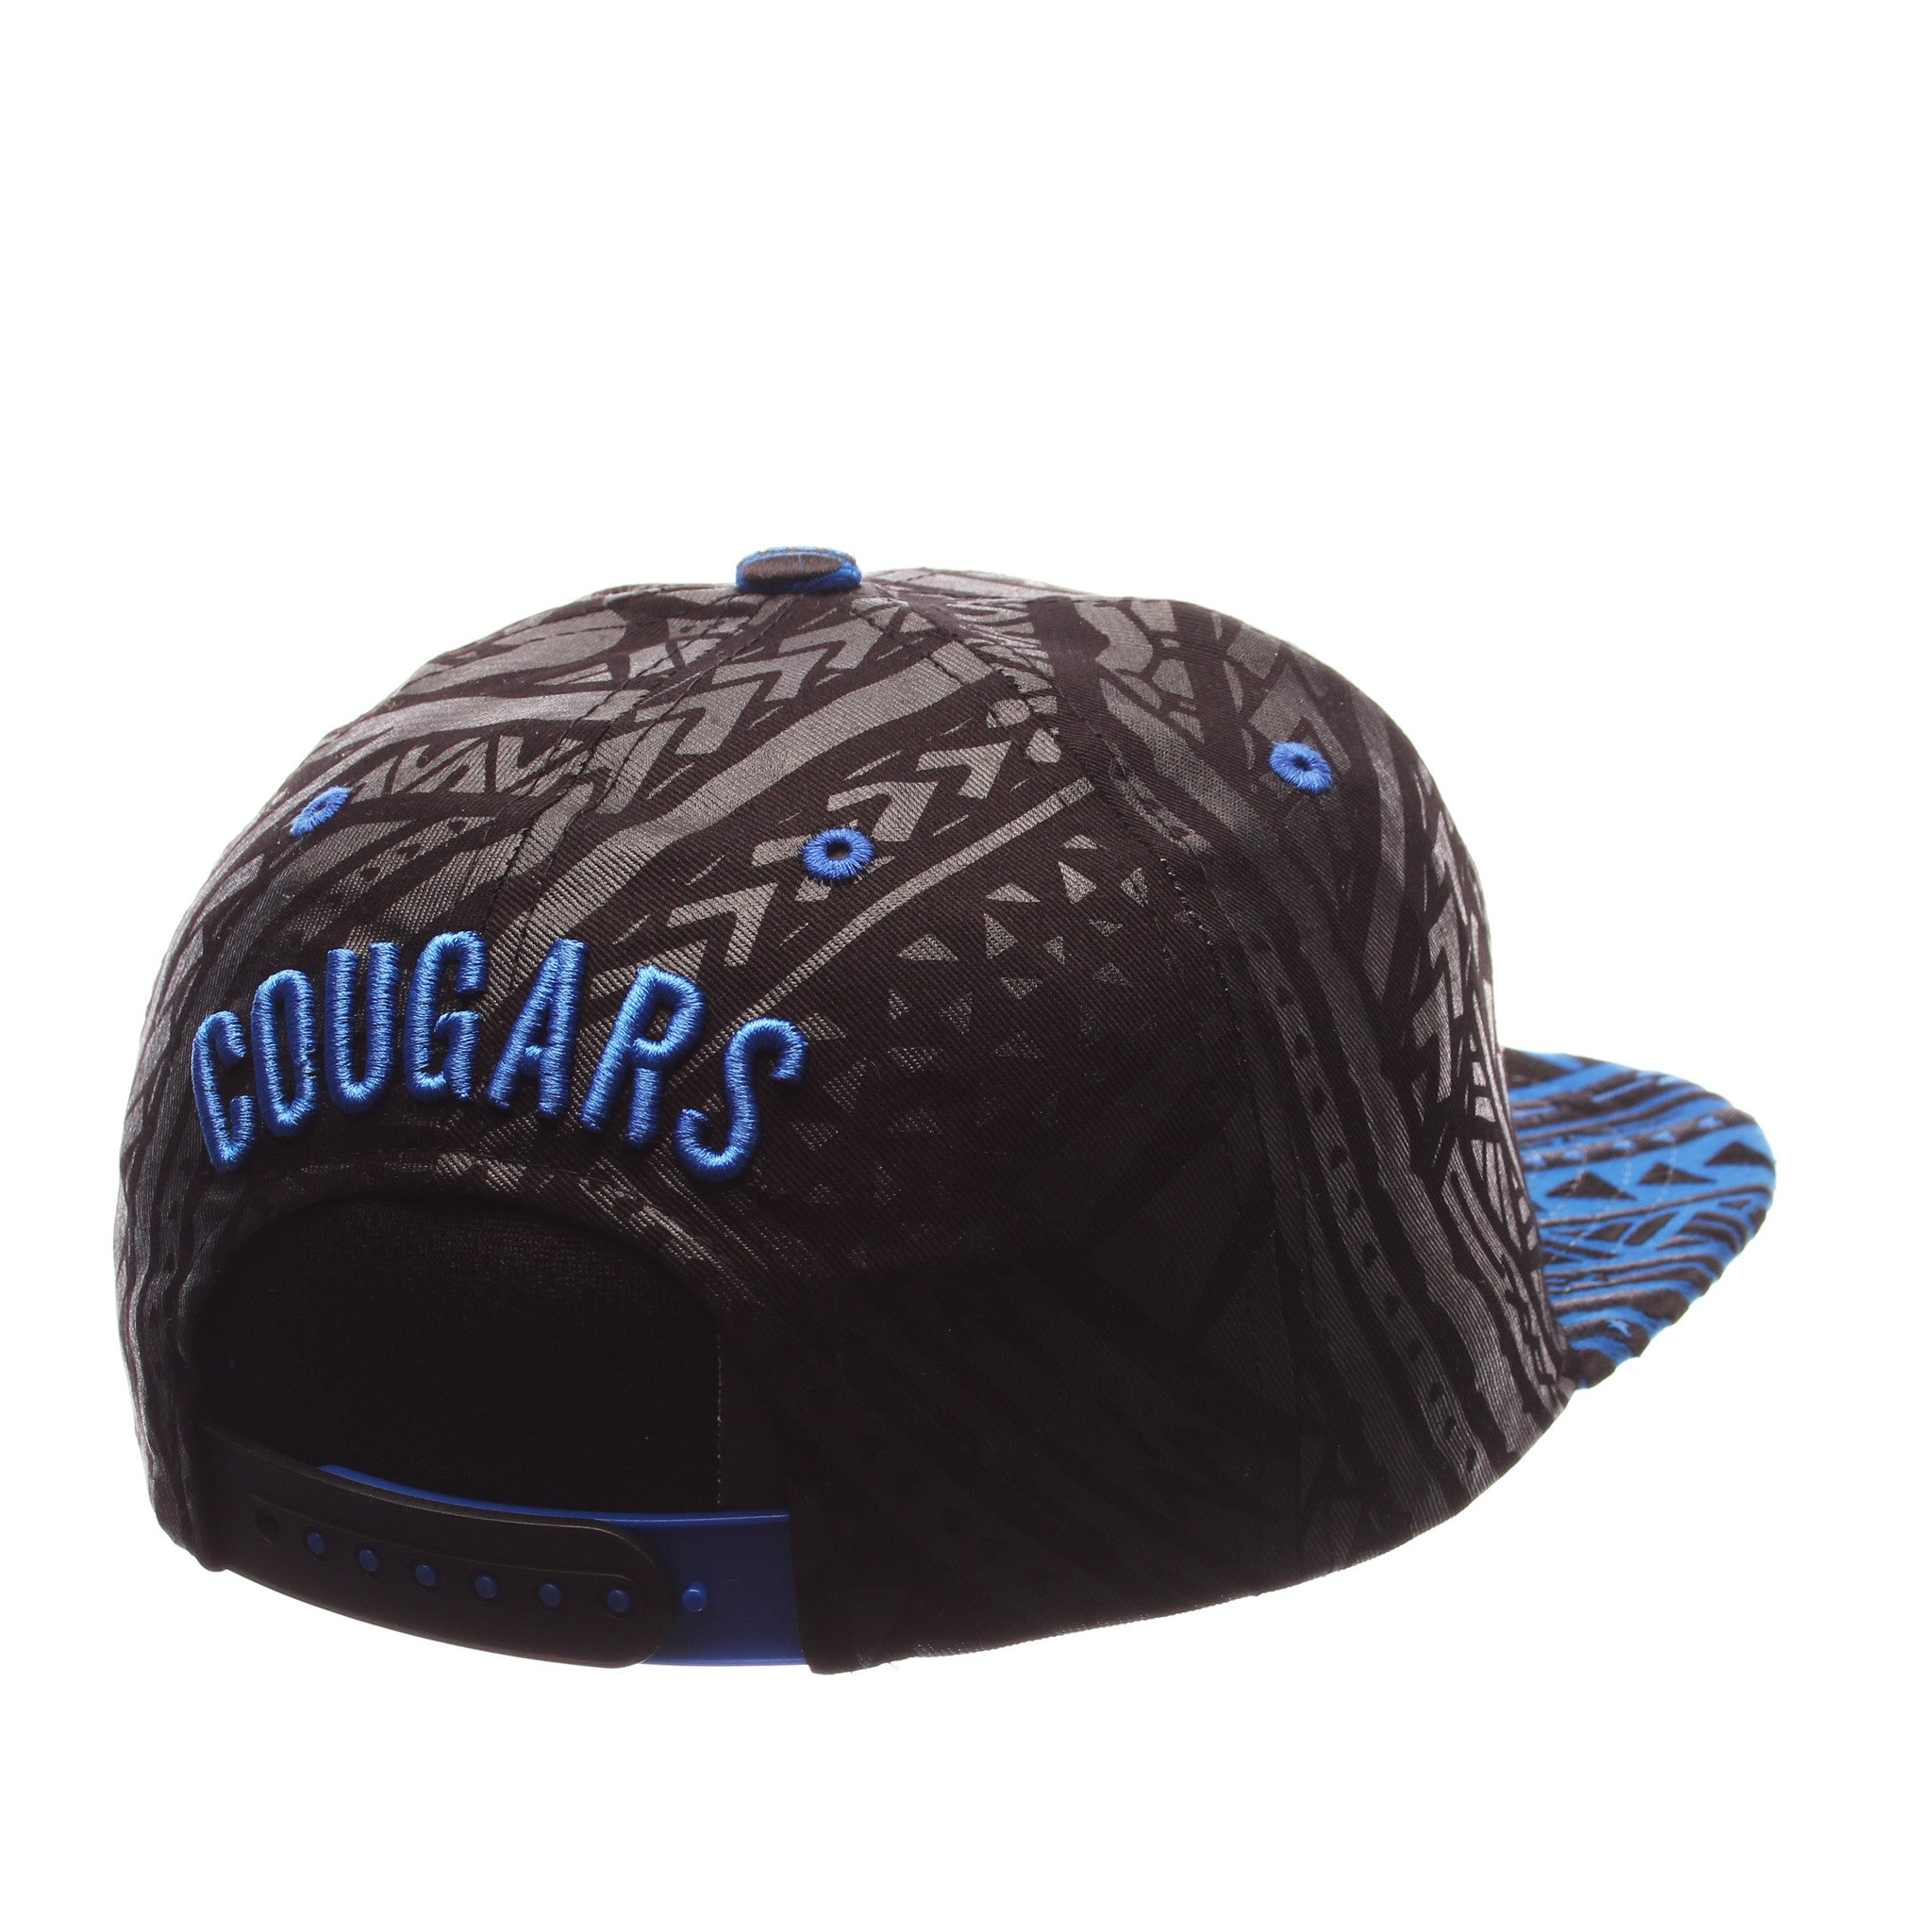 Brigham Young University Kahuku 32/5 (High) (ROYALBYU COUGAR/BYU) Black 100% Cotton Twill Adjustable hats by Zephyr